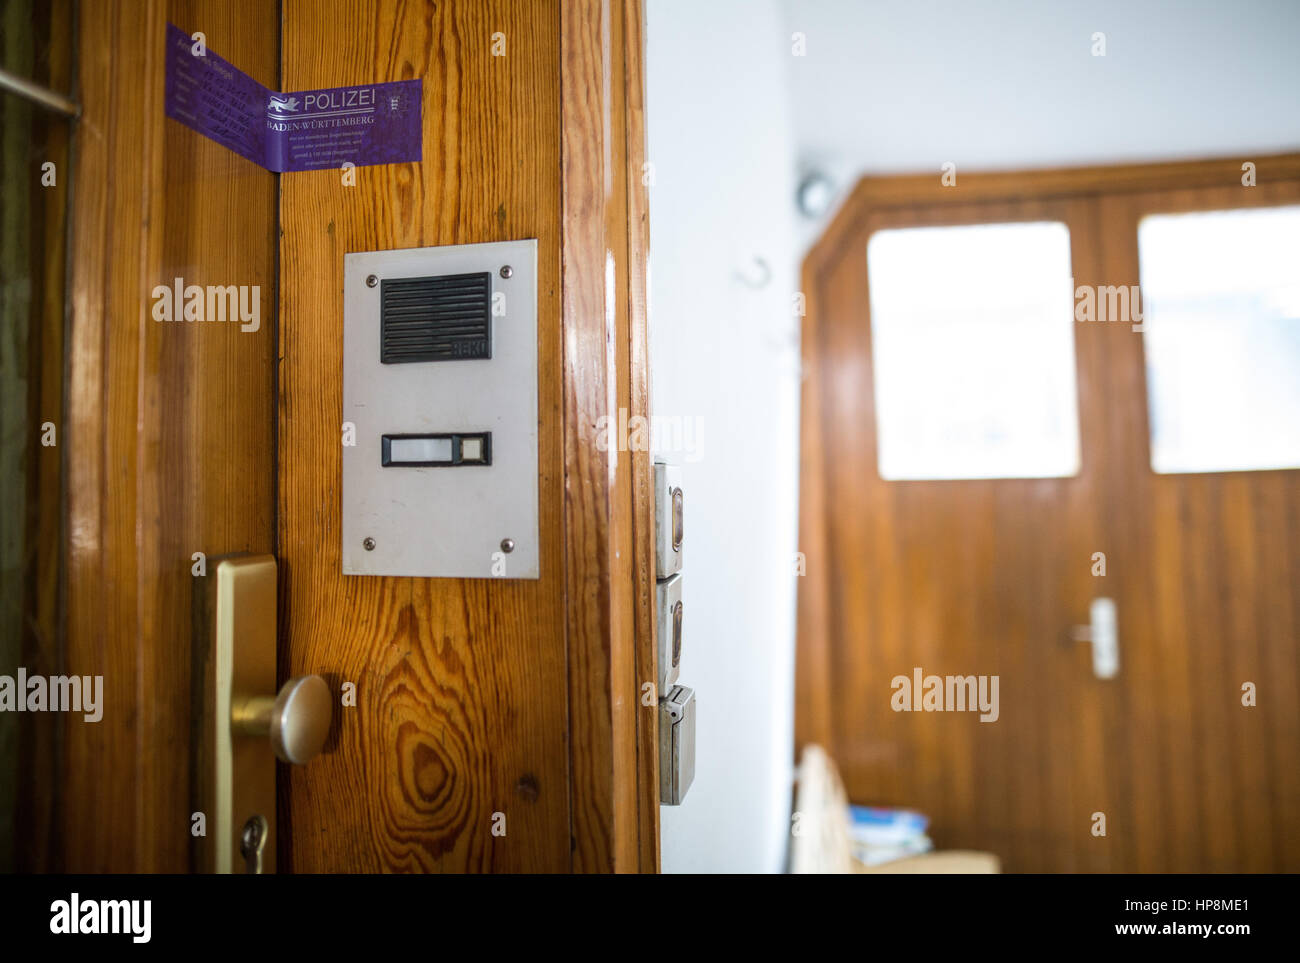 A police tape is attached to the door of a house in which the dead bodies of two children were found on 18 February 2017 in Enz-Aurich Germany ... & A police tape is attached to the door of a house in which the dead ...